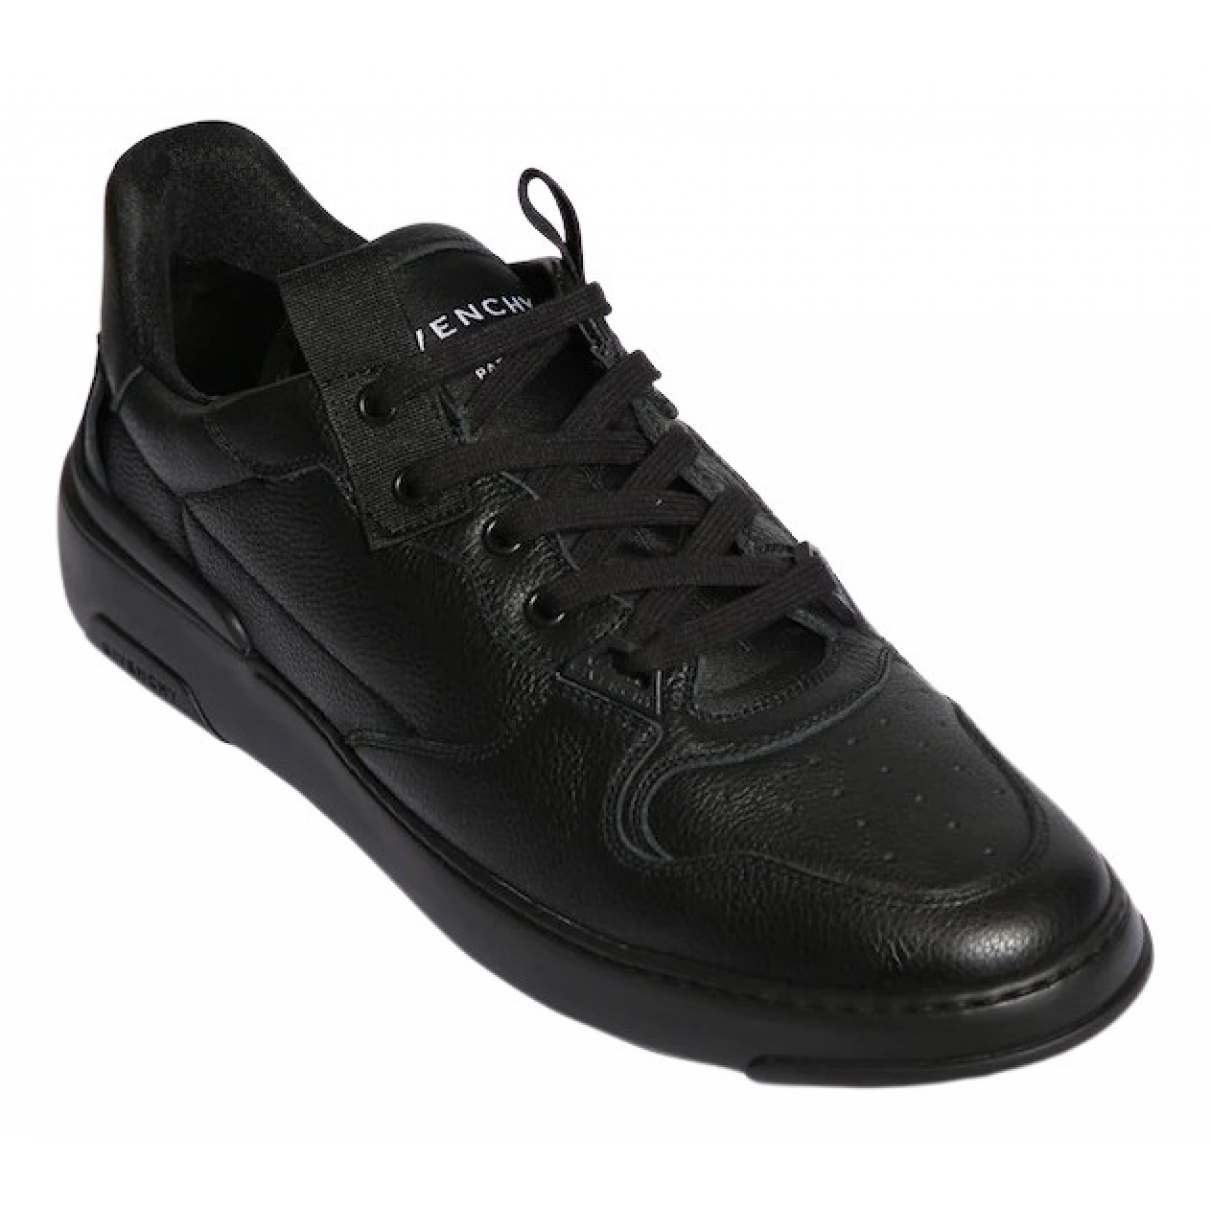 Givenchy \N Black Leather Trainers for Men 44 EU